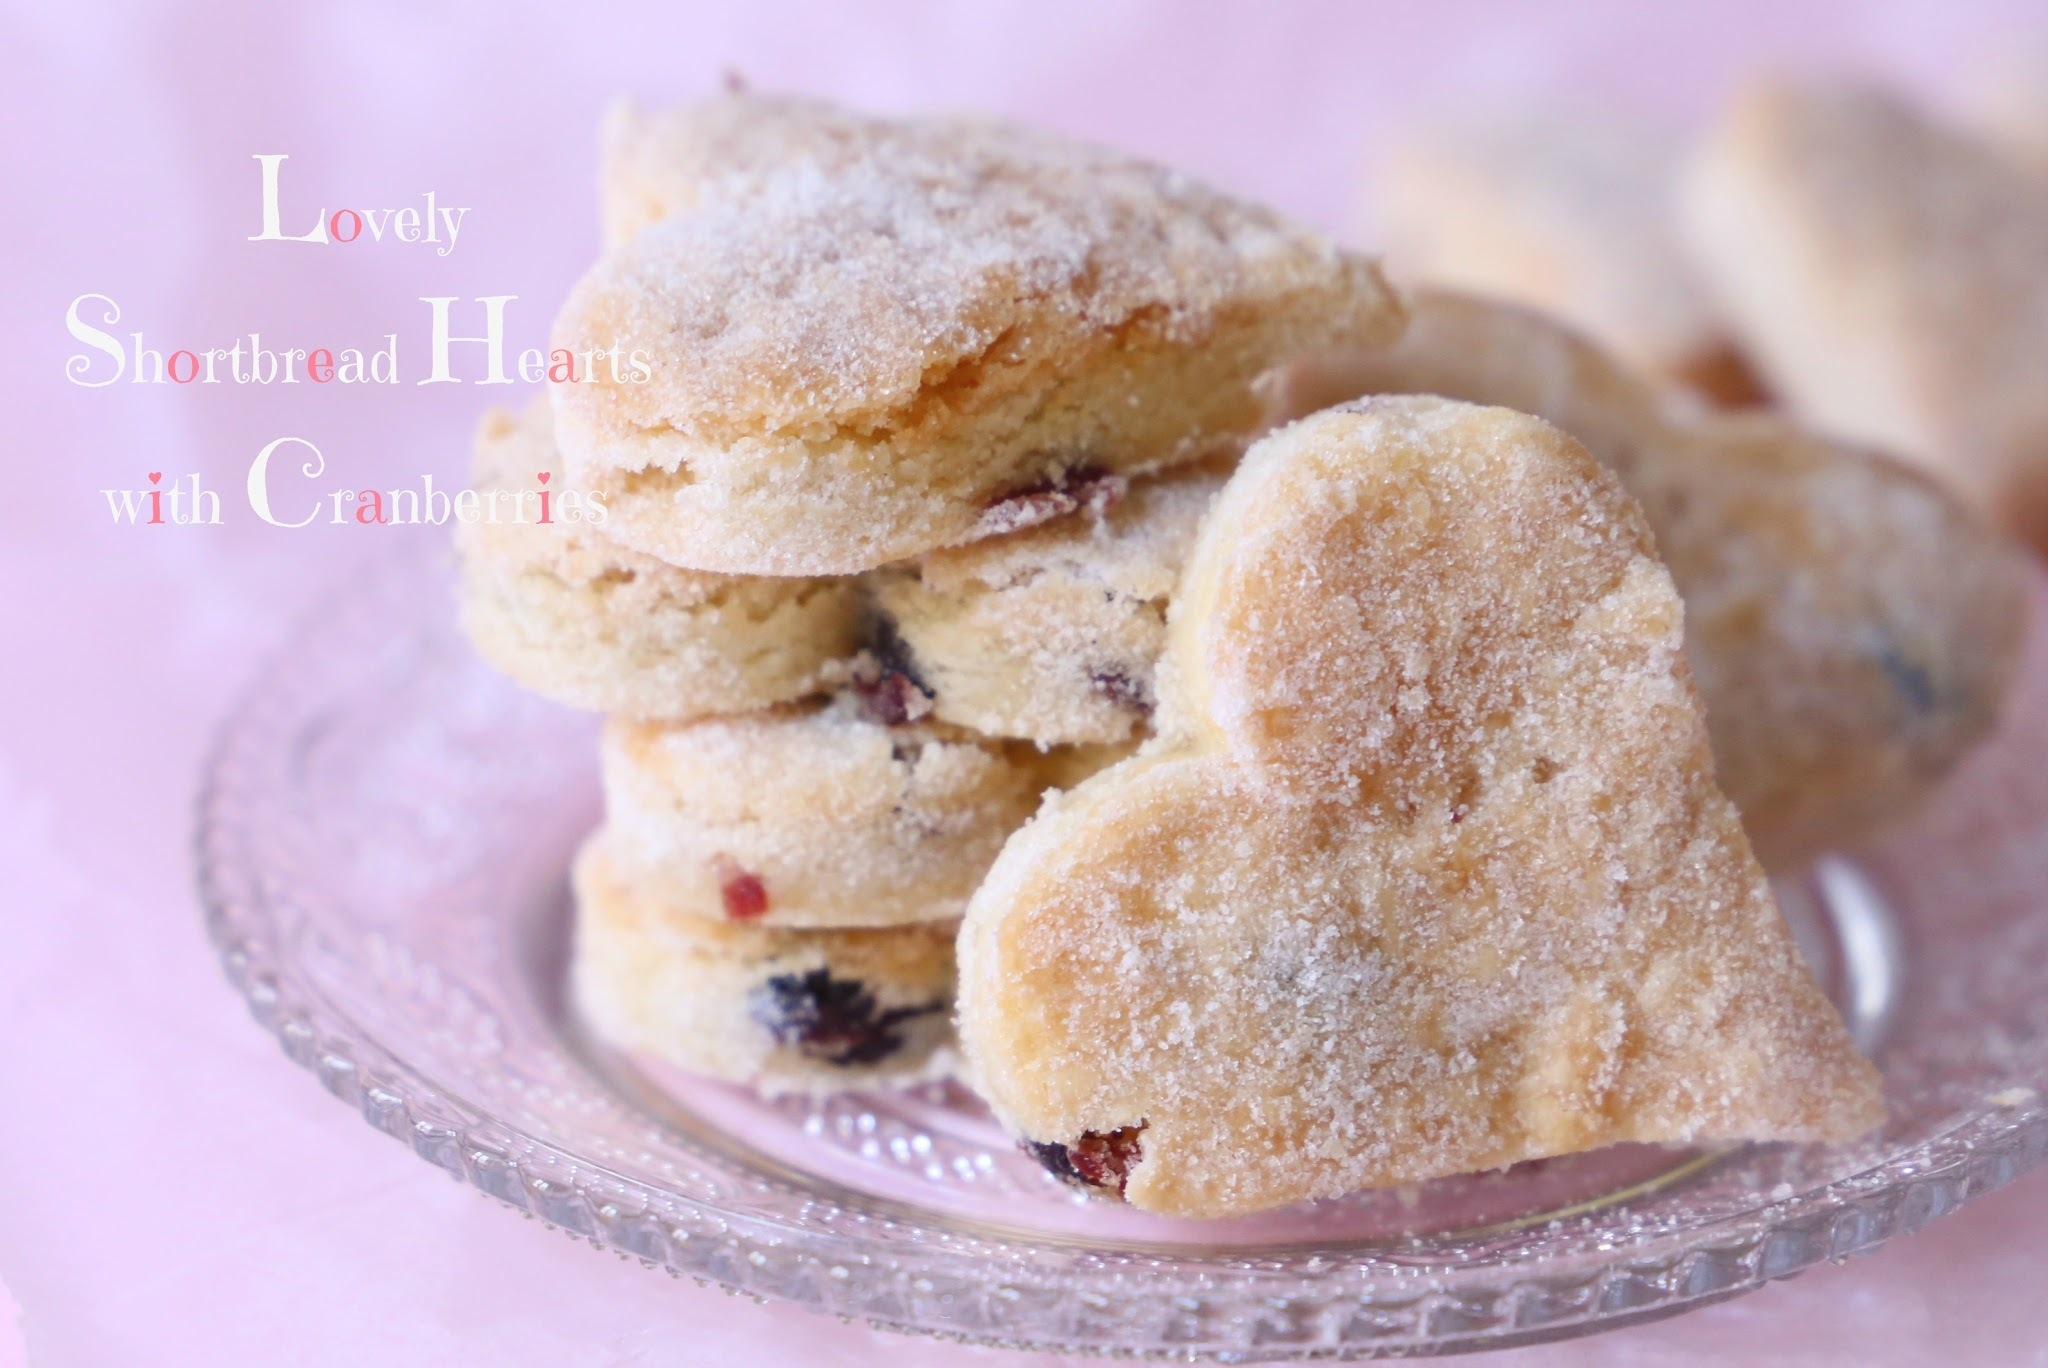 Lovely Shortbread Hearts with Cranberries